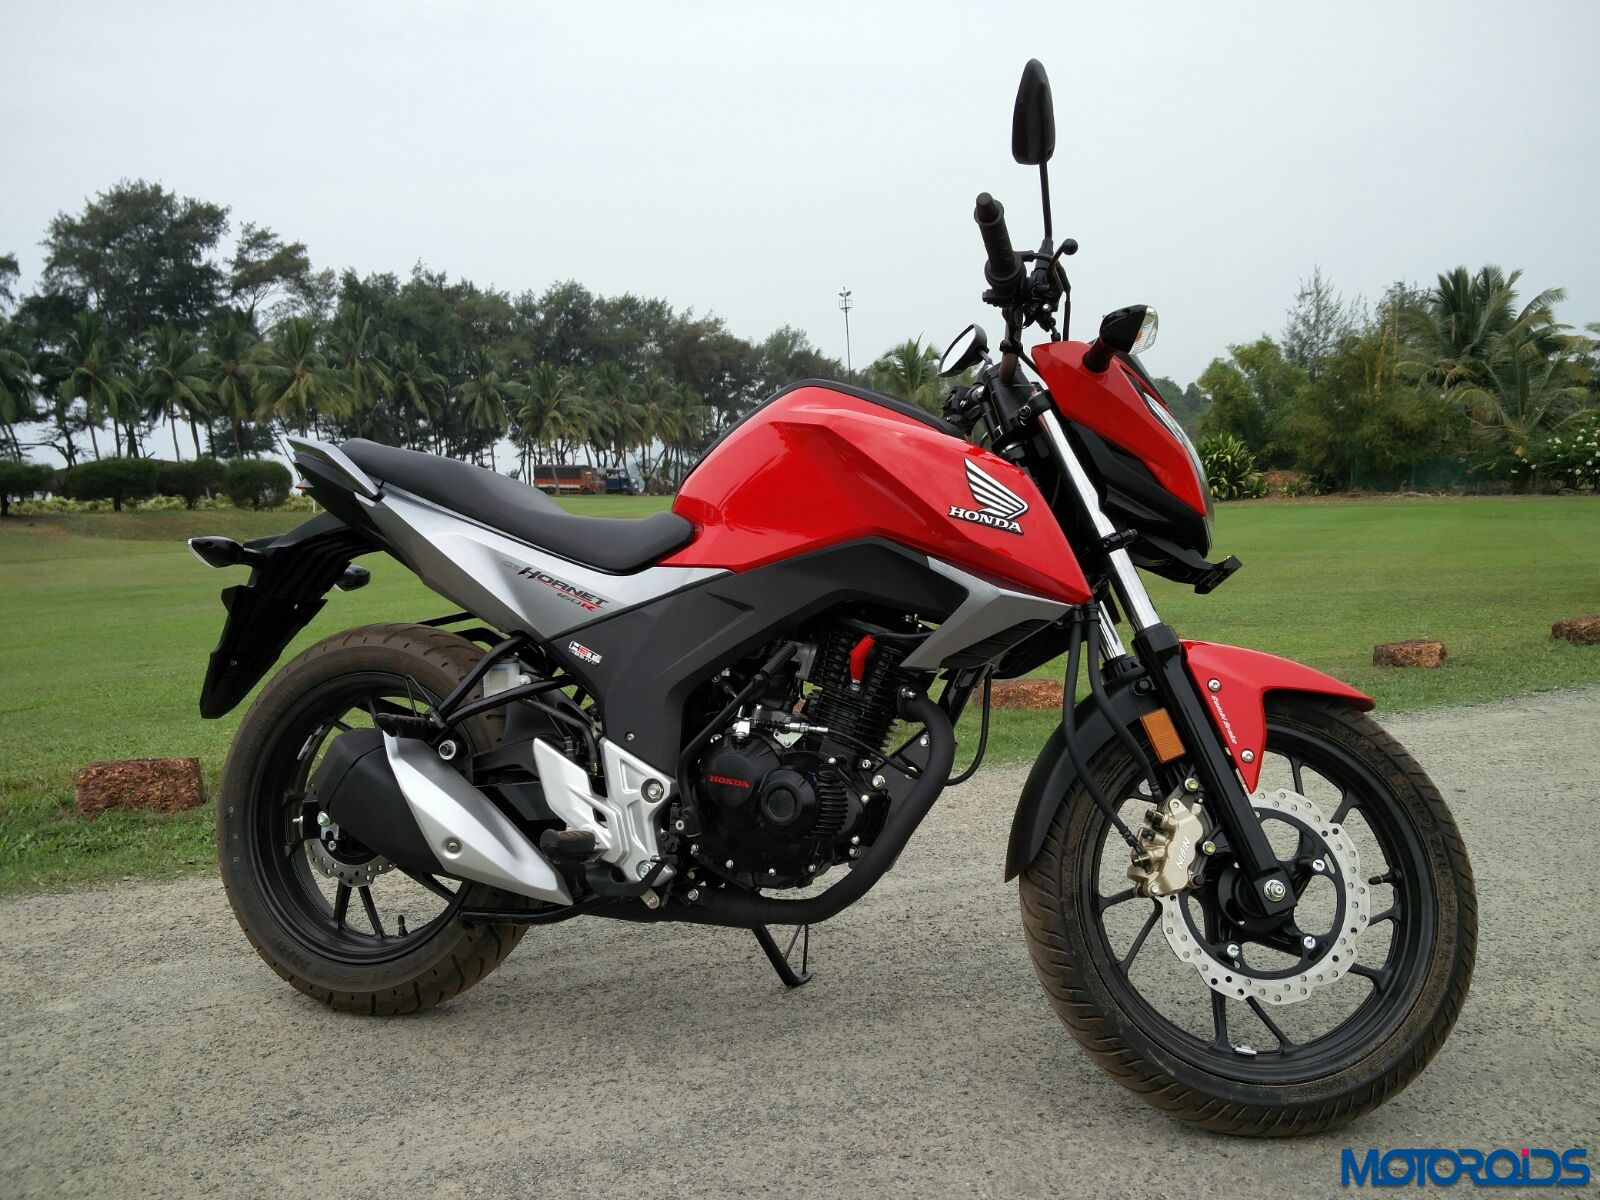 honda cb hornet 160r first ride review images specs and details dressy diligence motoroids. Black Bedroom Furniture Sets. Home Design Ideas